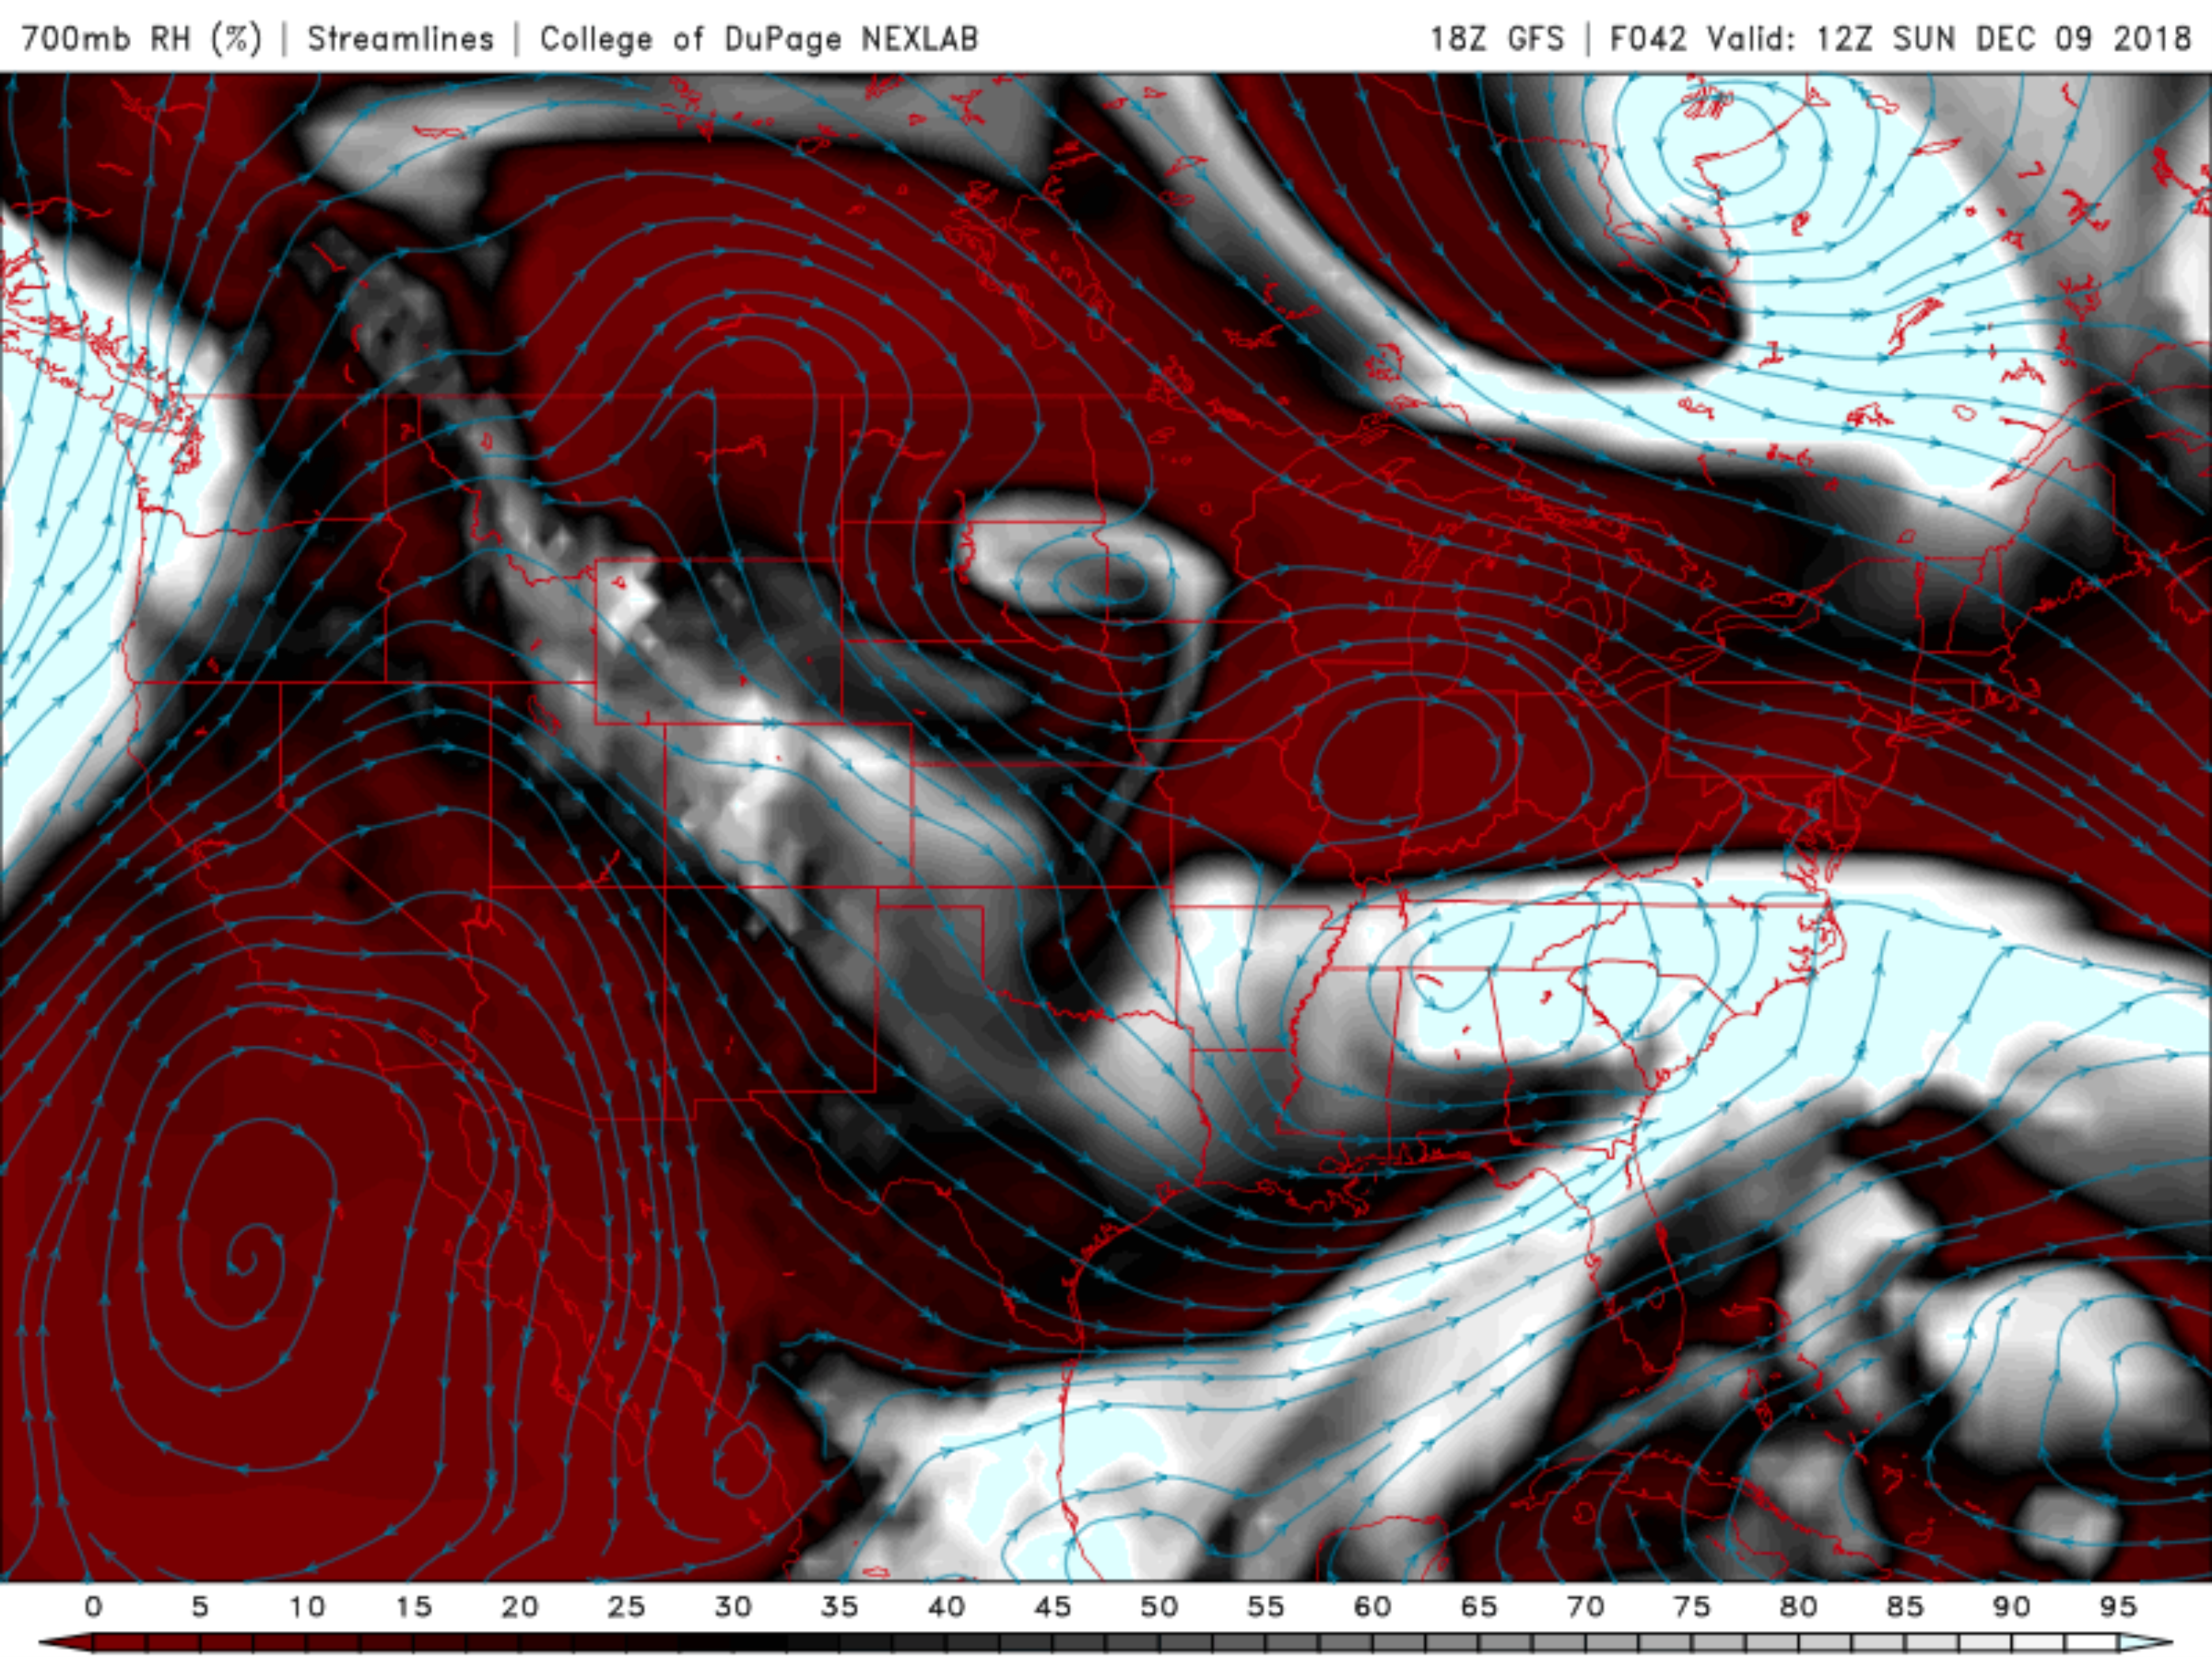 GFS 700 mb streamlines (showing wind/flow pattern) and relative humidity (shaded)